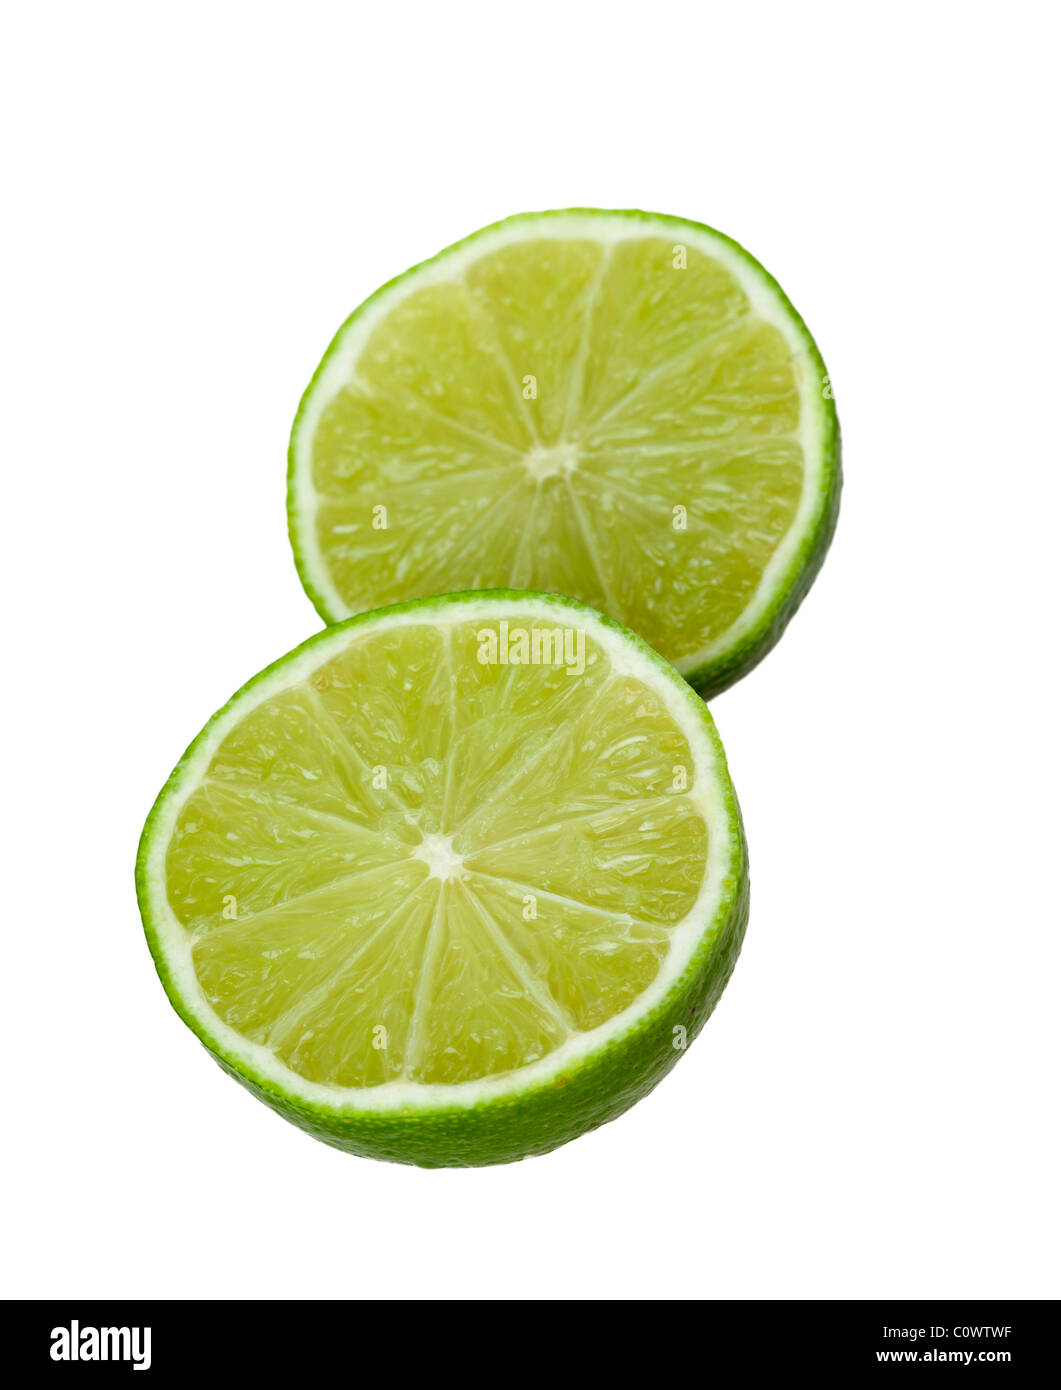 Fresh lime sliced in half isolated against a white background - Stock Image